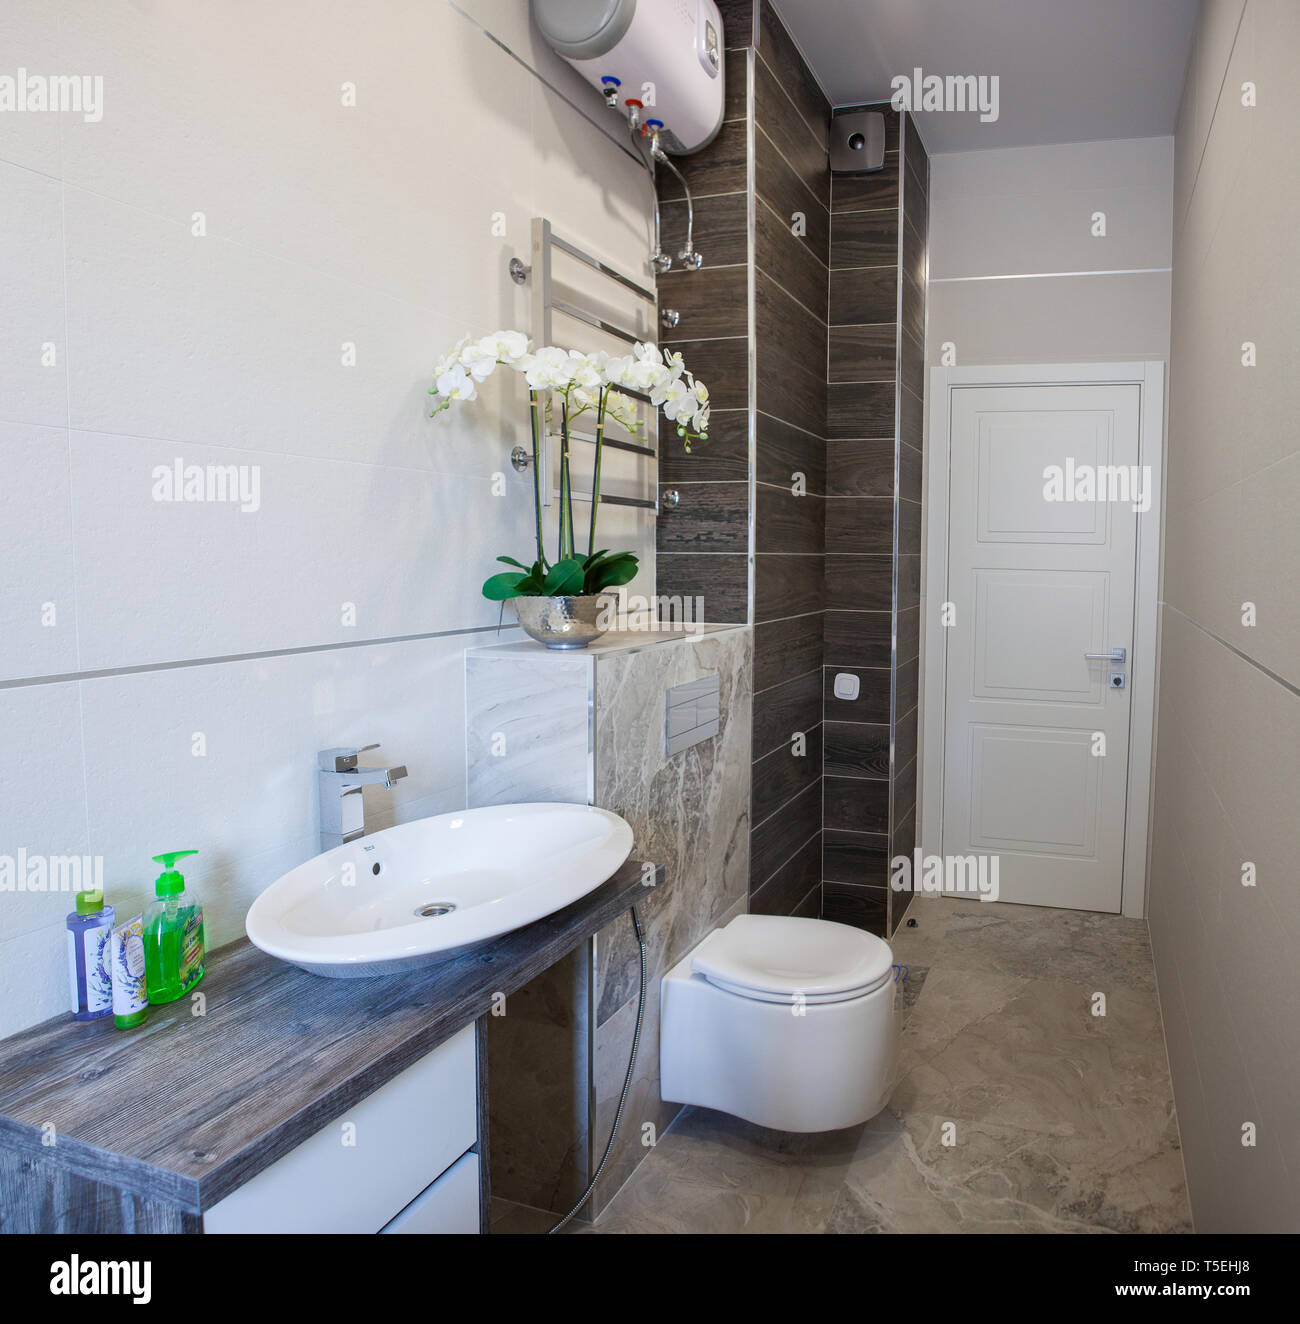 interior, apartment renovation, construction, renovation Stock Photo